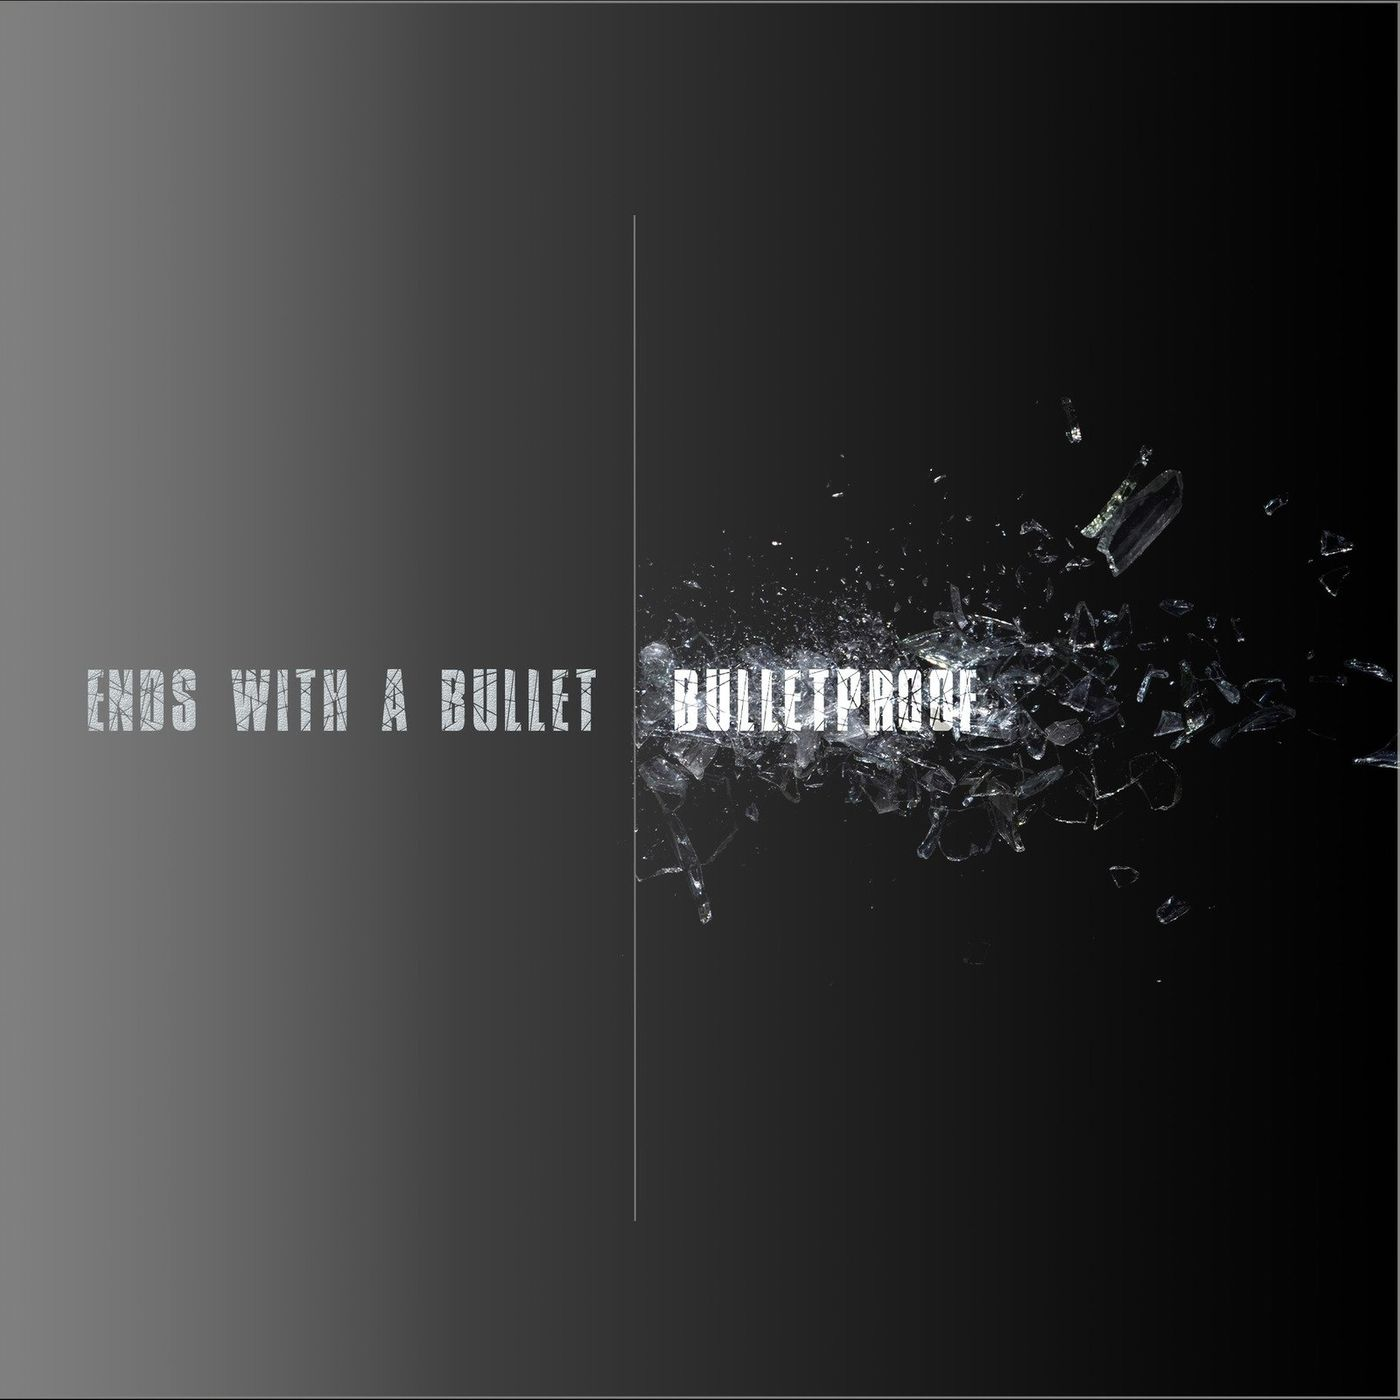 Ends With A Bullet - Bulletproof [single] (2020)